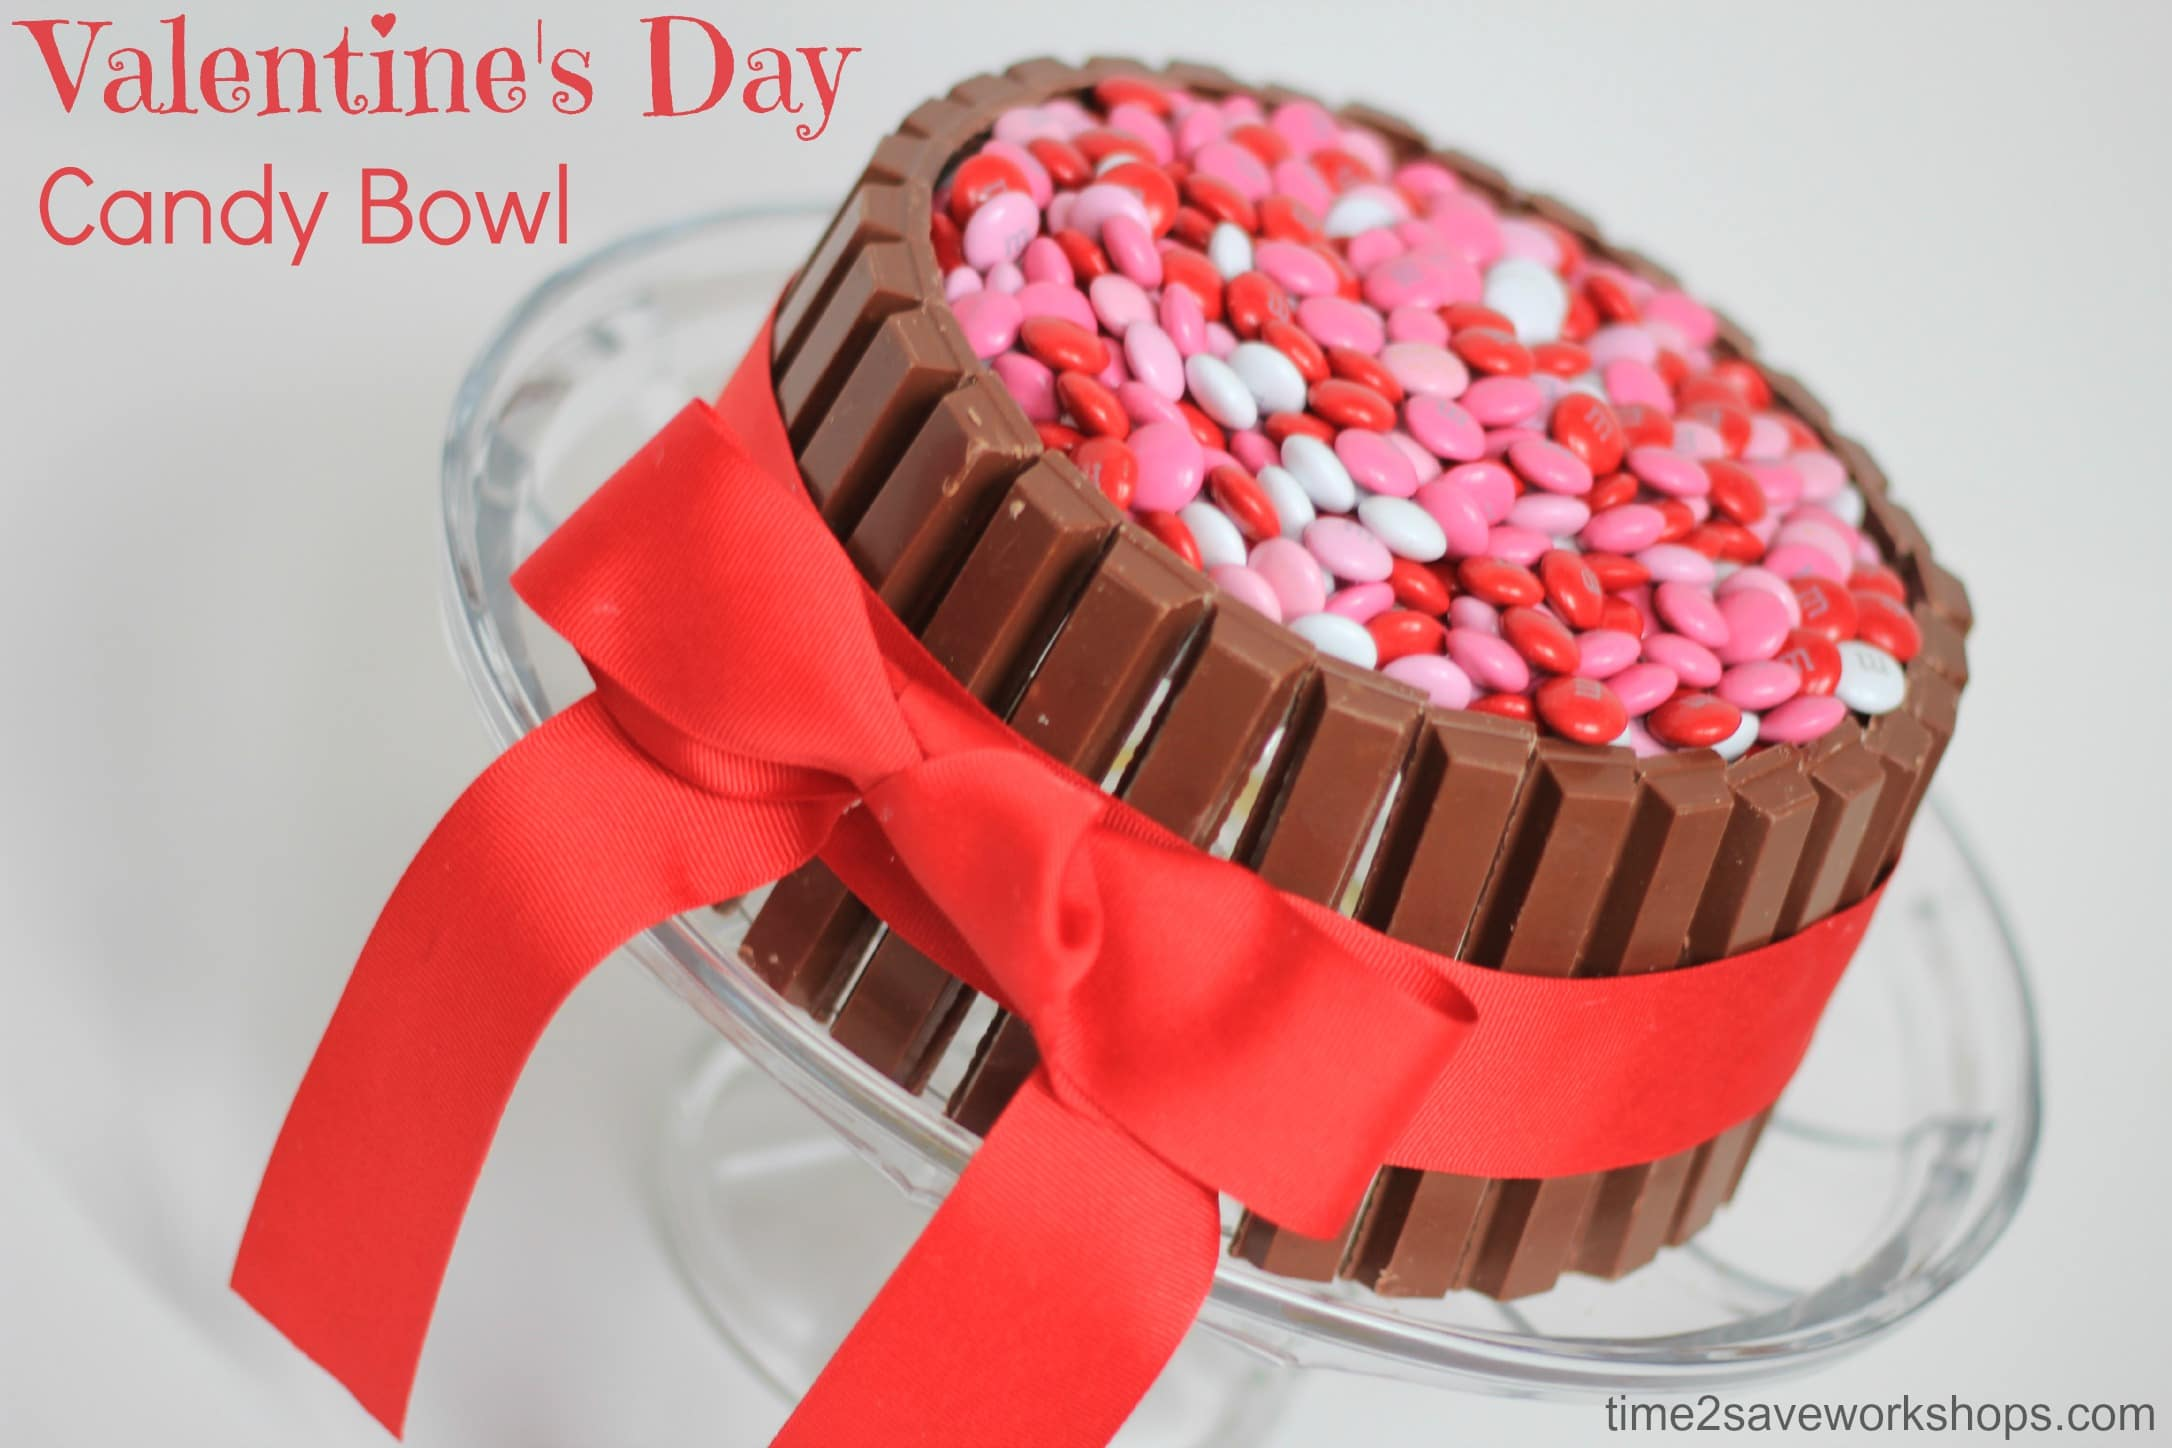 Cute Valentine's Day Ideas: DIY Candy Bowl - Kasey Trenum